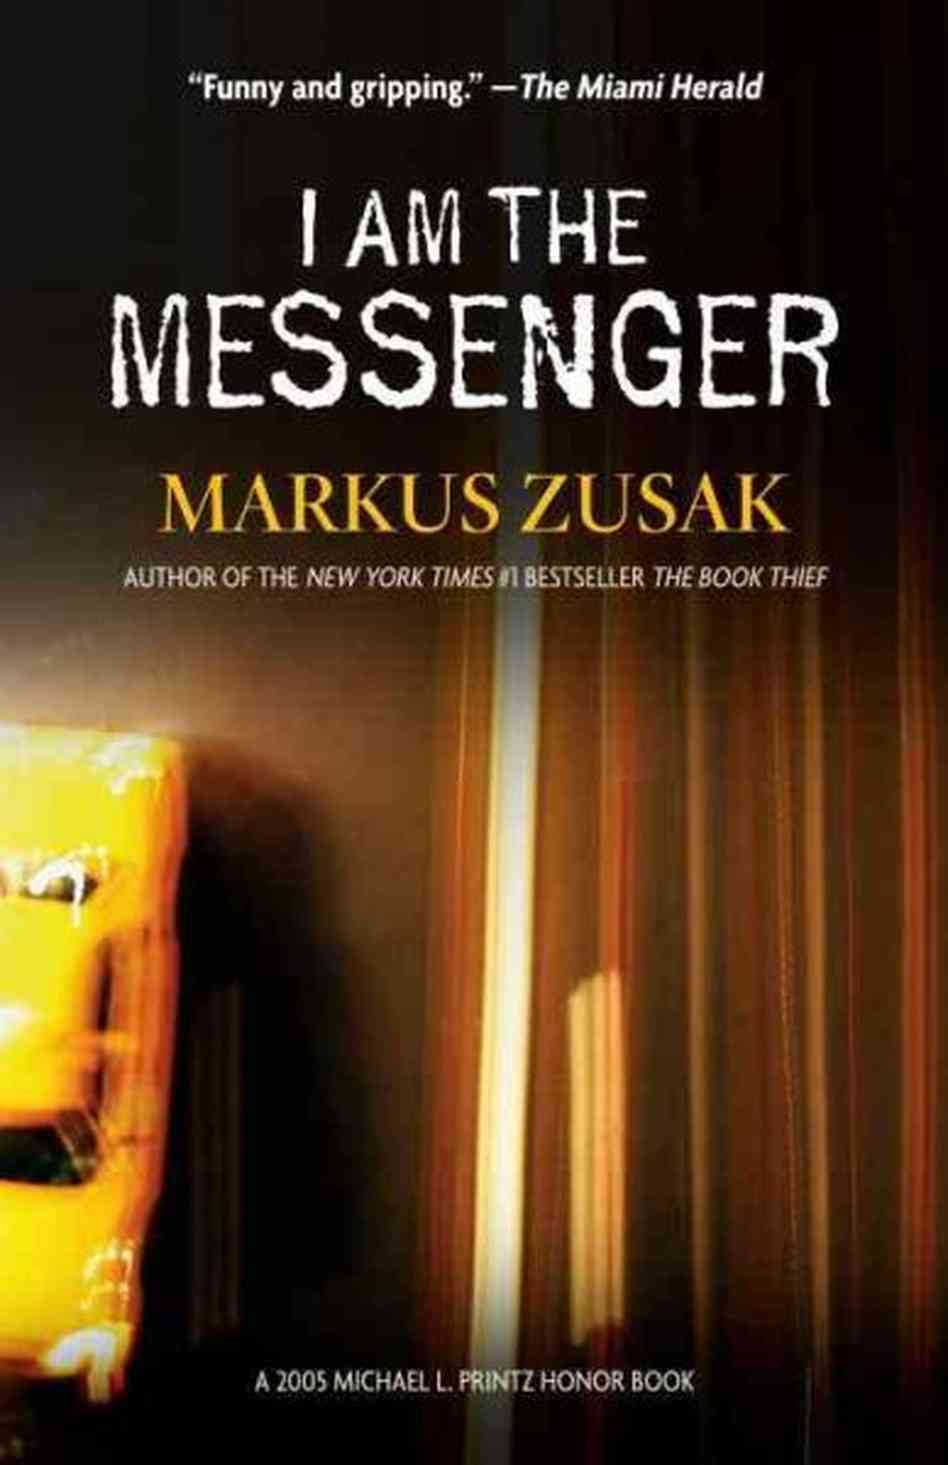 Guest Post: Small Things Become Big in Markus Zusak's I Am the